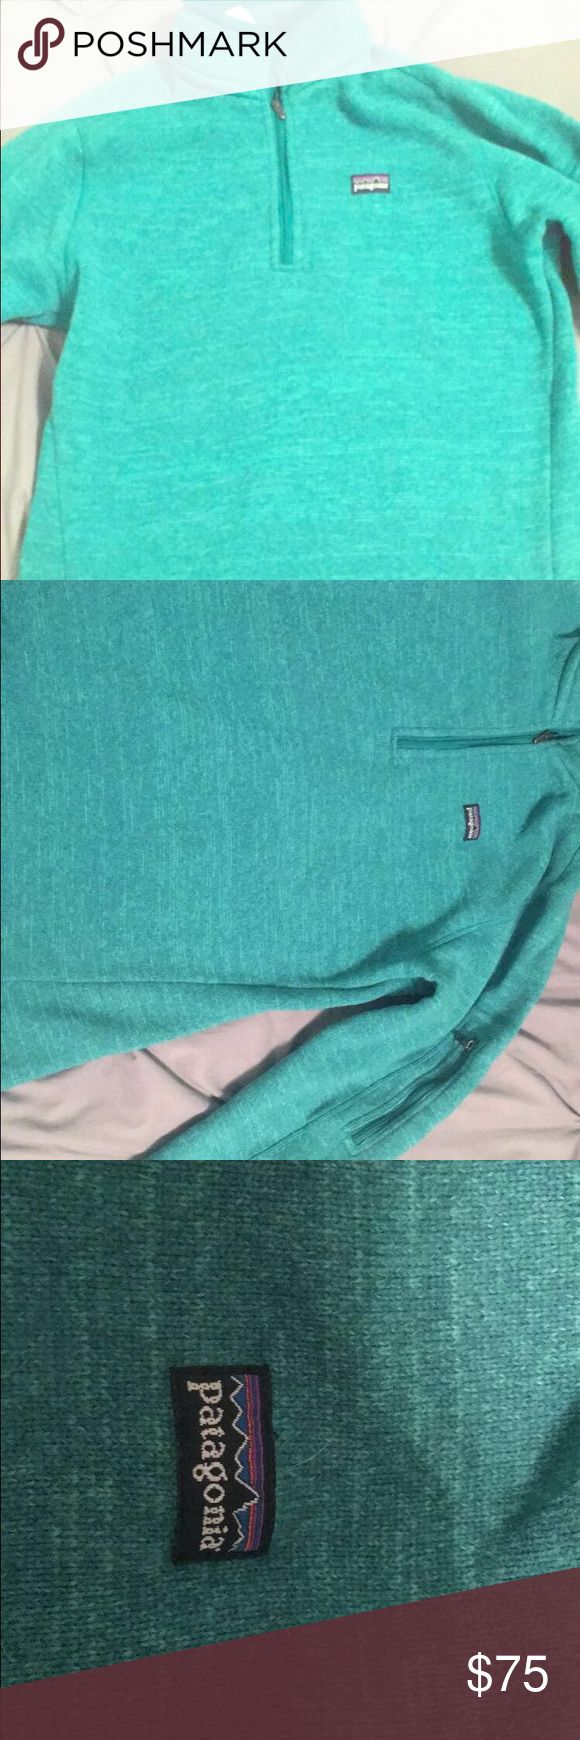 Patagonia better sweater Patagonia better sweater for sale...in good condition just don't wear it as much as I thought I would.. the color is a greenish blue Patagonia Tops Sweatshirts & Hoodies